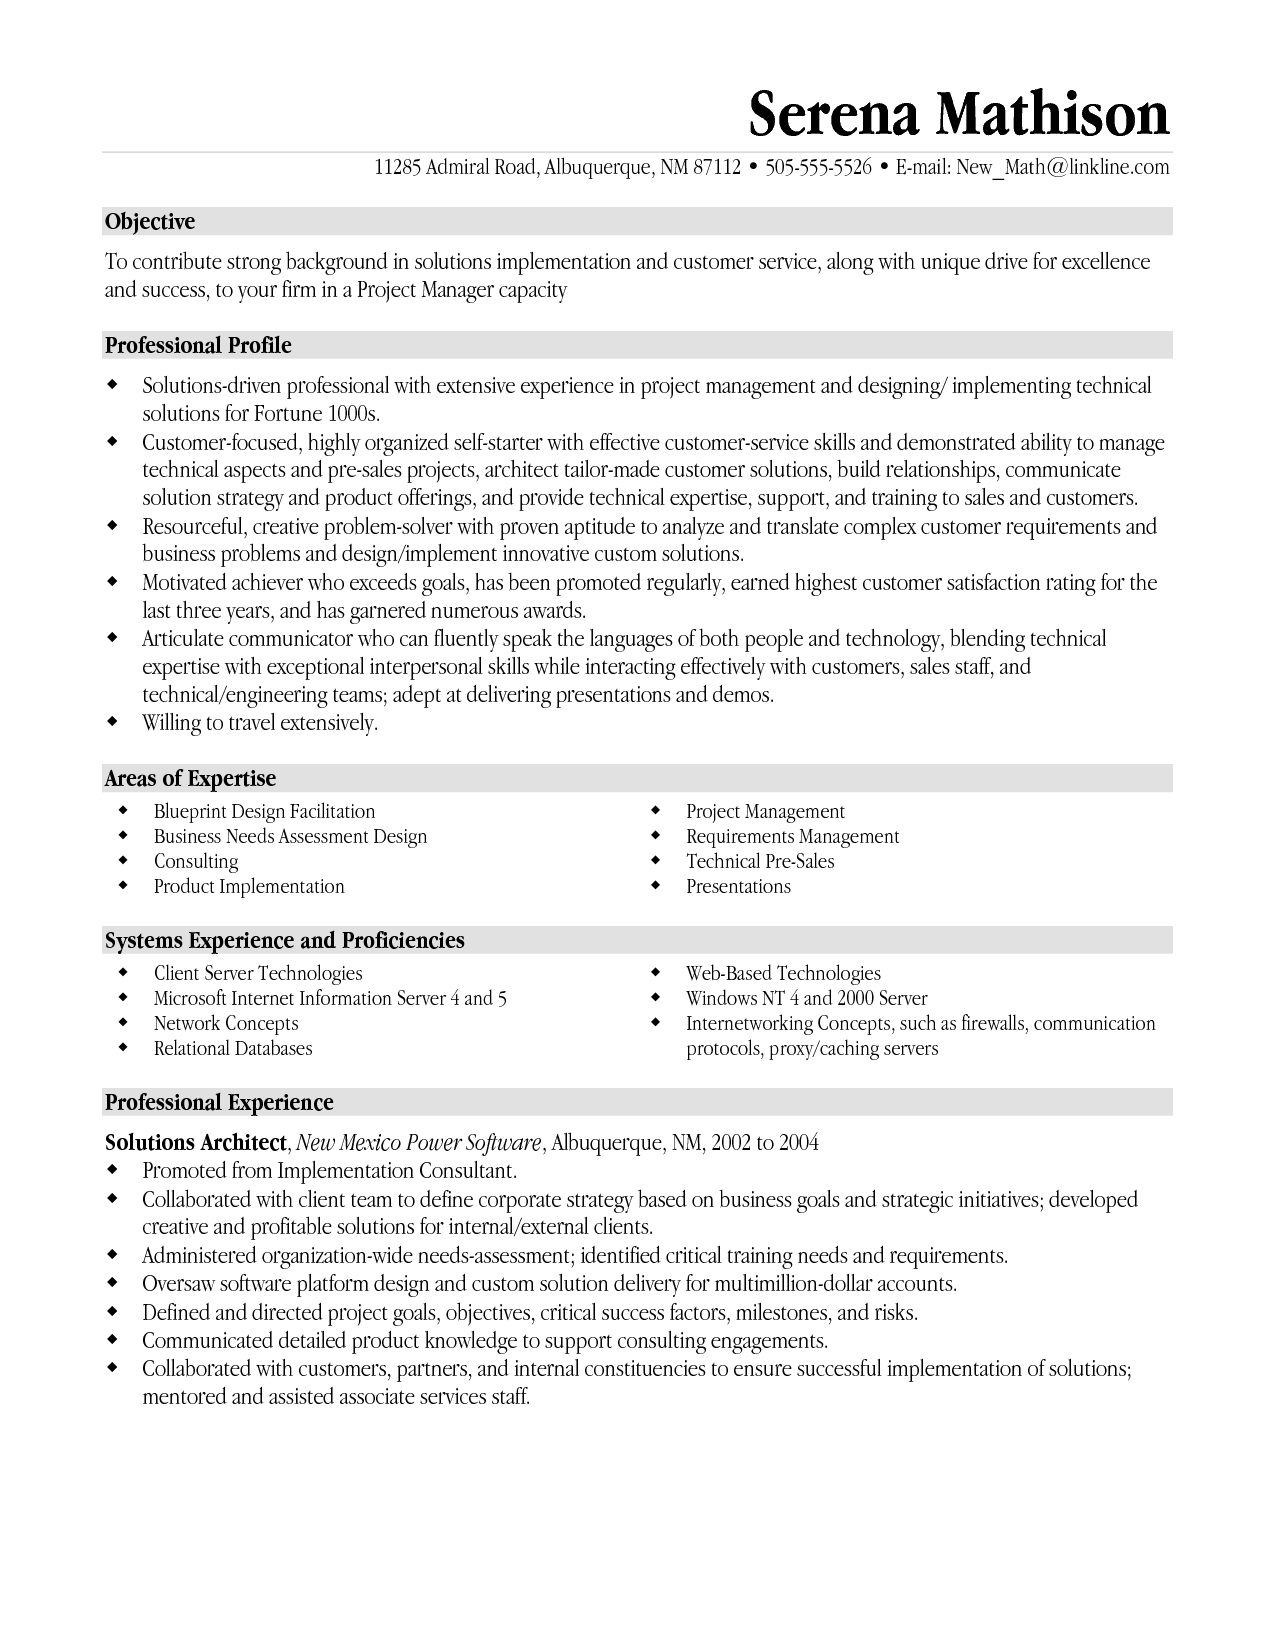 Resume templates project manager project management resume resume templates project manager project management resume altavistaventures Image collections